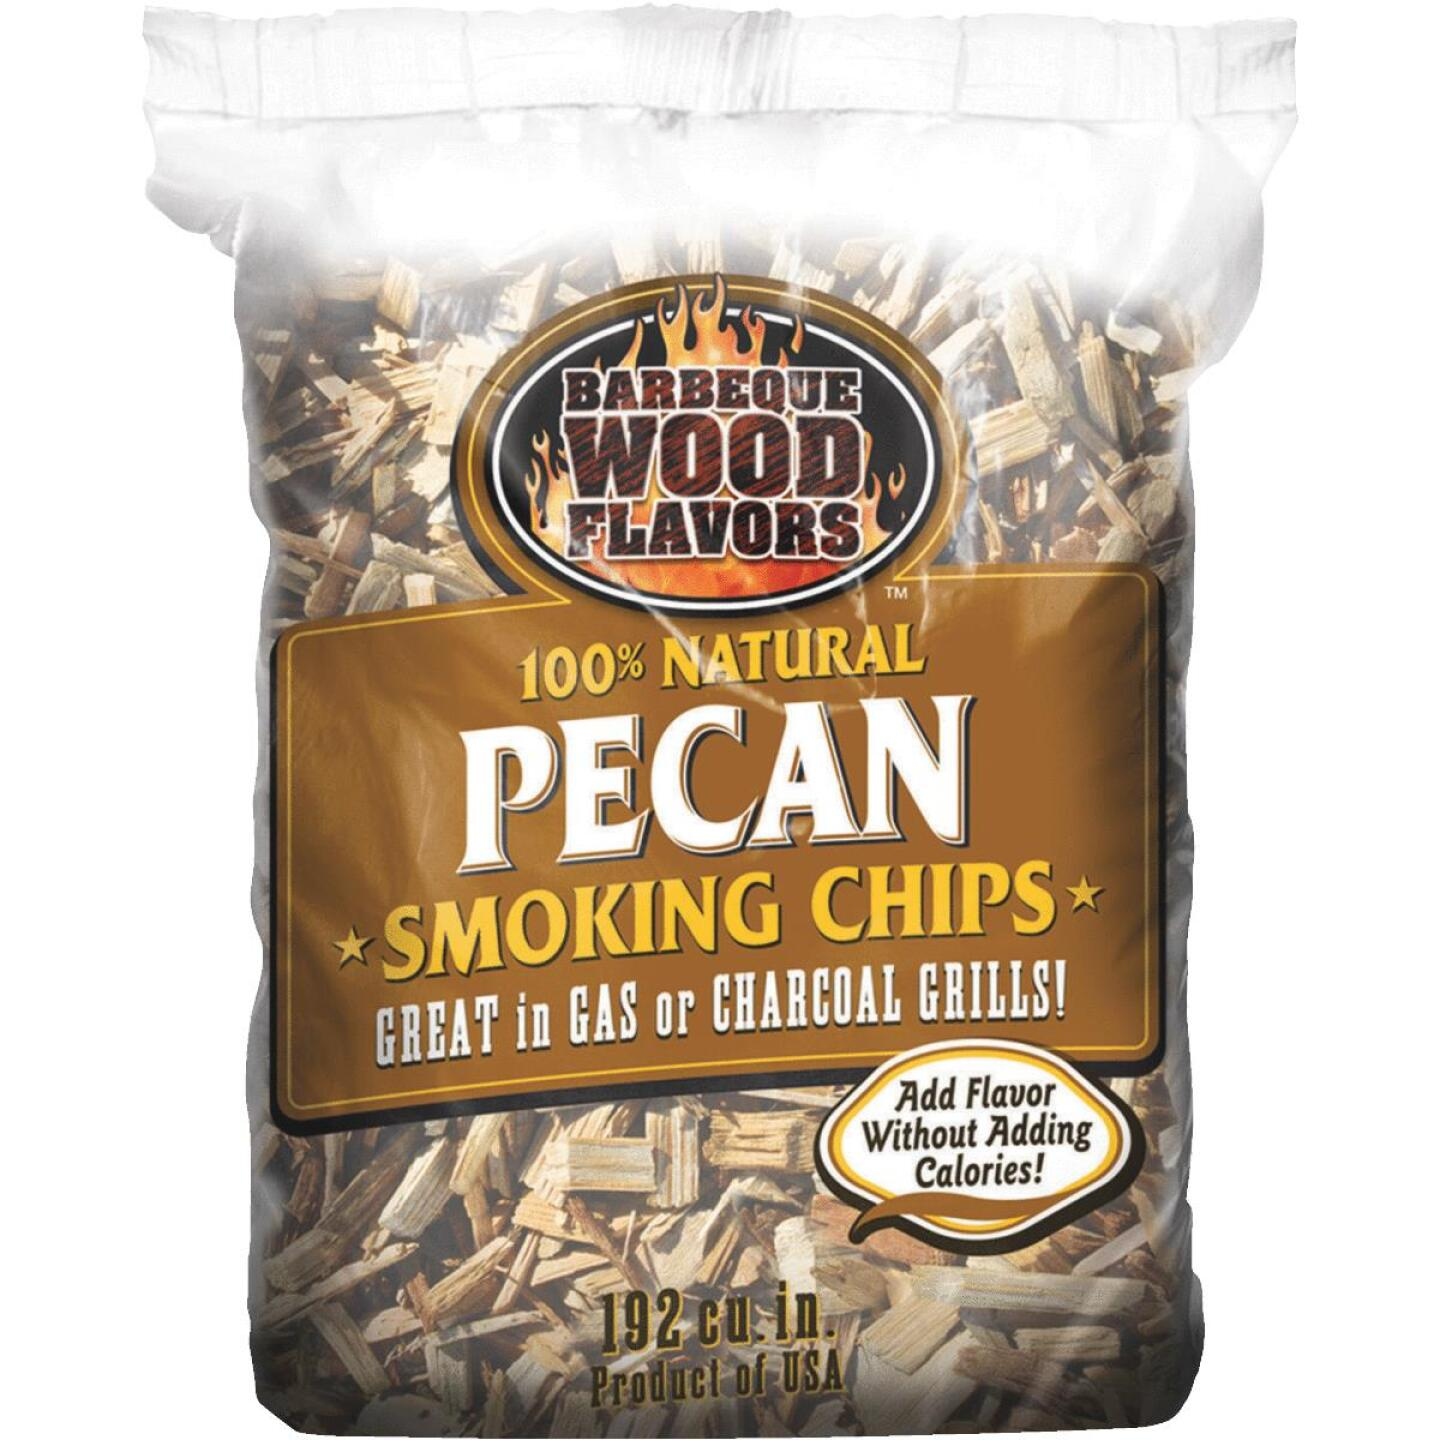 Barbeque Wood Flavors 2.25 Lb. Pecan Smoking Chips Image 1